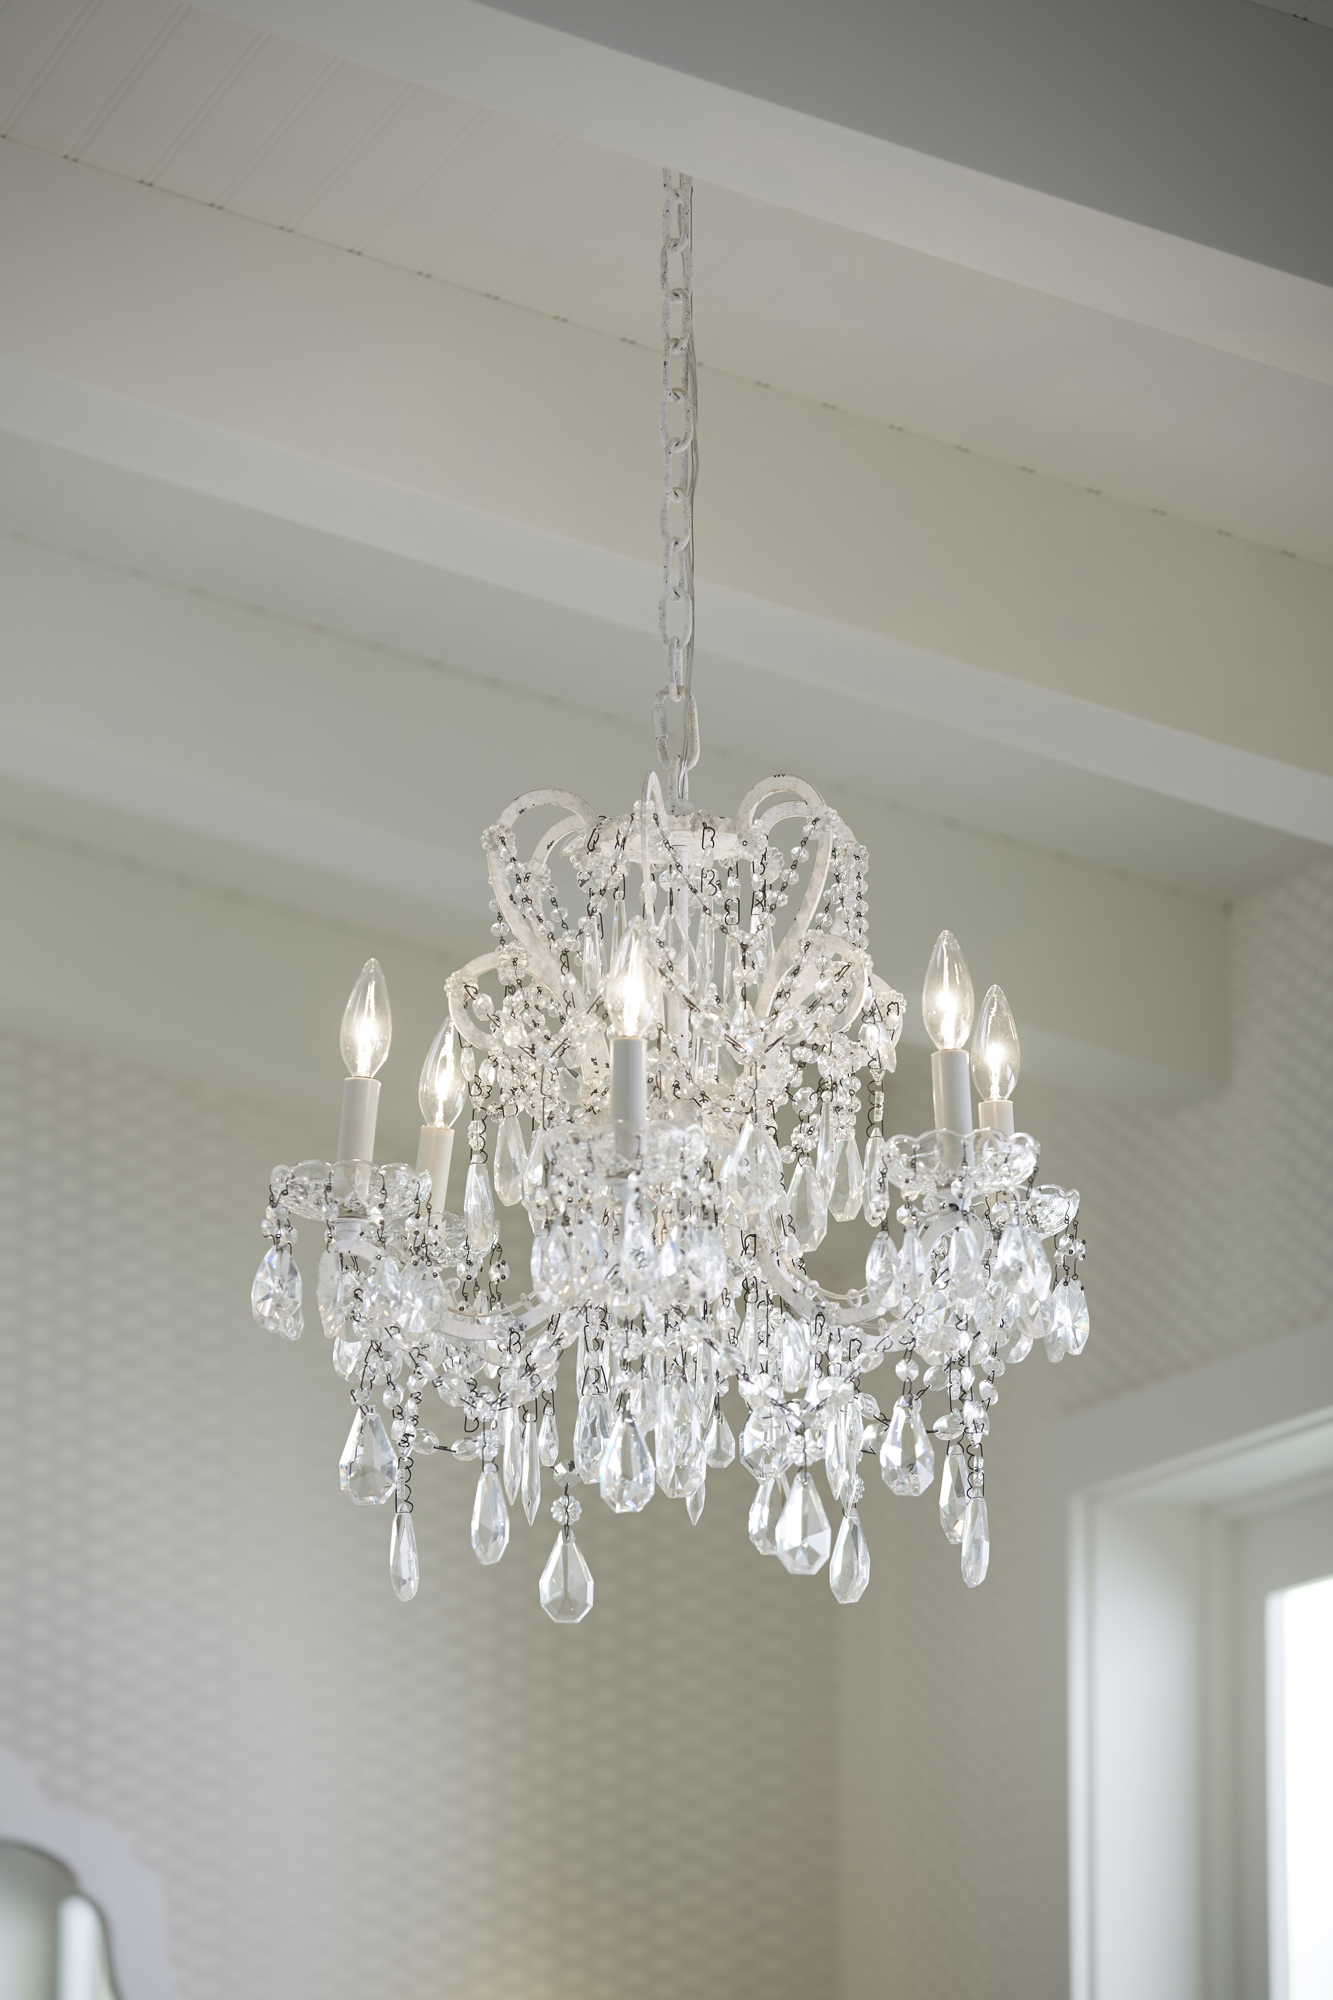 An ornate light fixture adds a surprising yet beautiful contrast to a subtly patterned wallpaper.